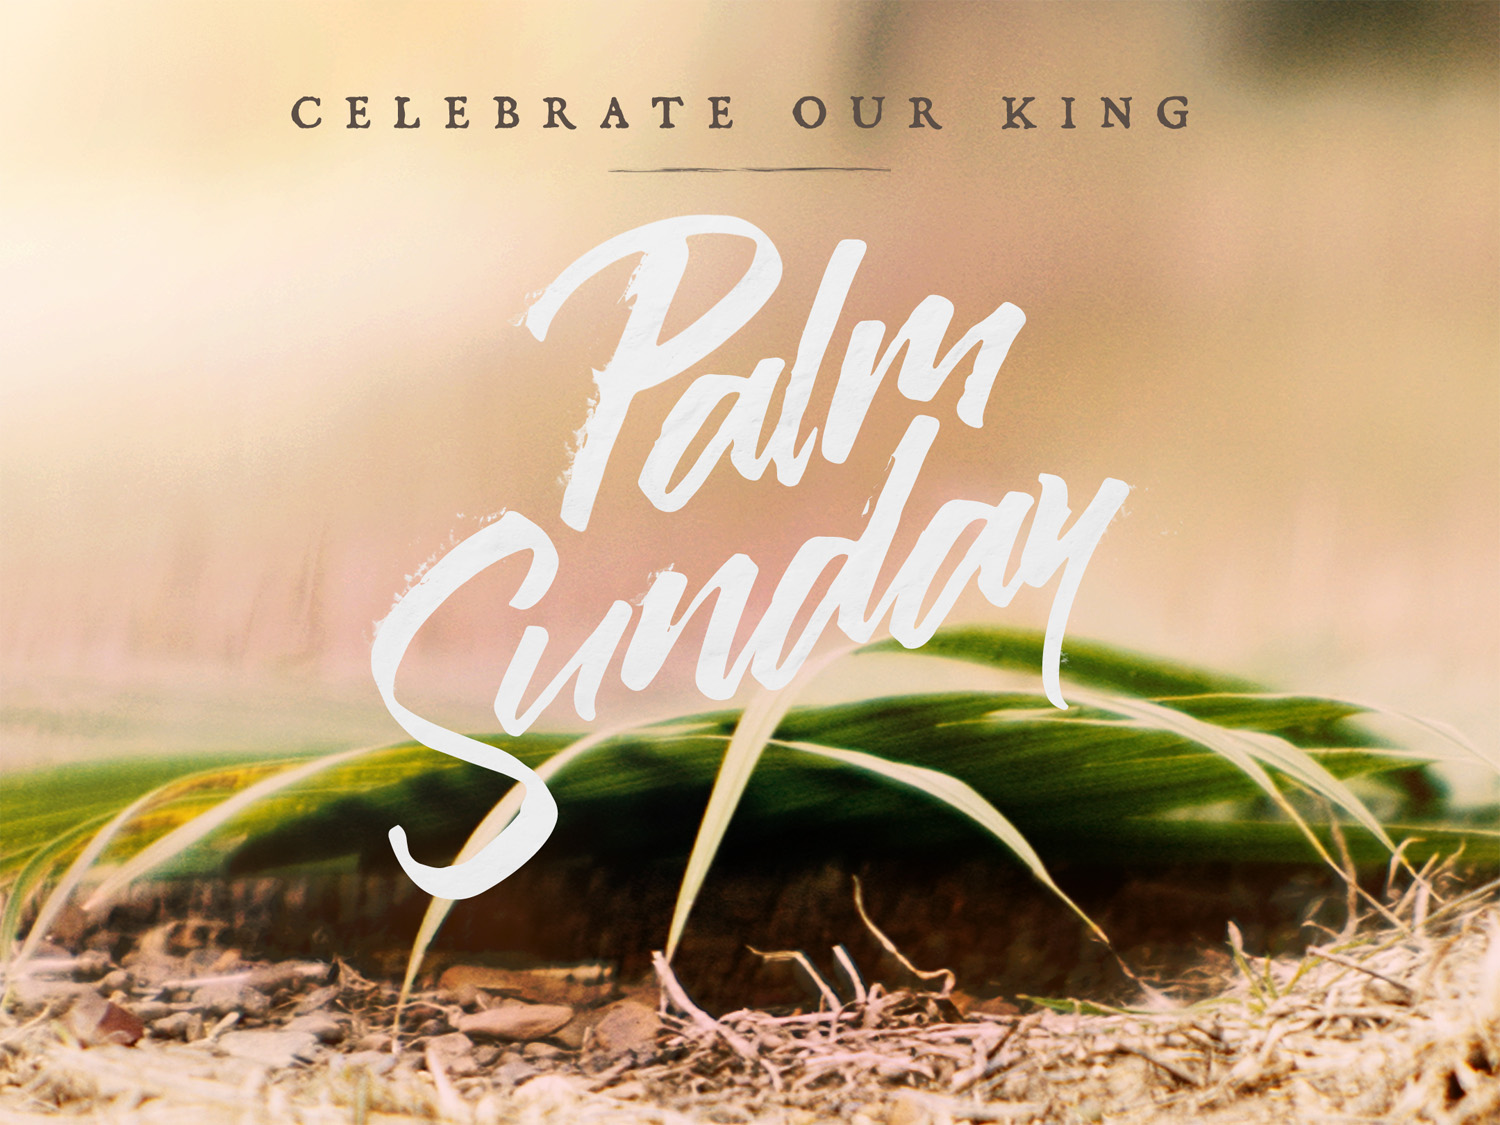 easter_moments_palm_sunday-title-1-Standard 4x3.jpg